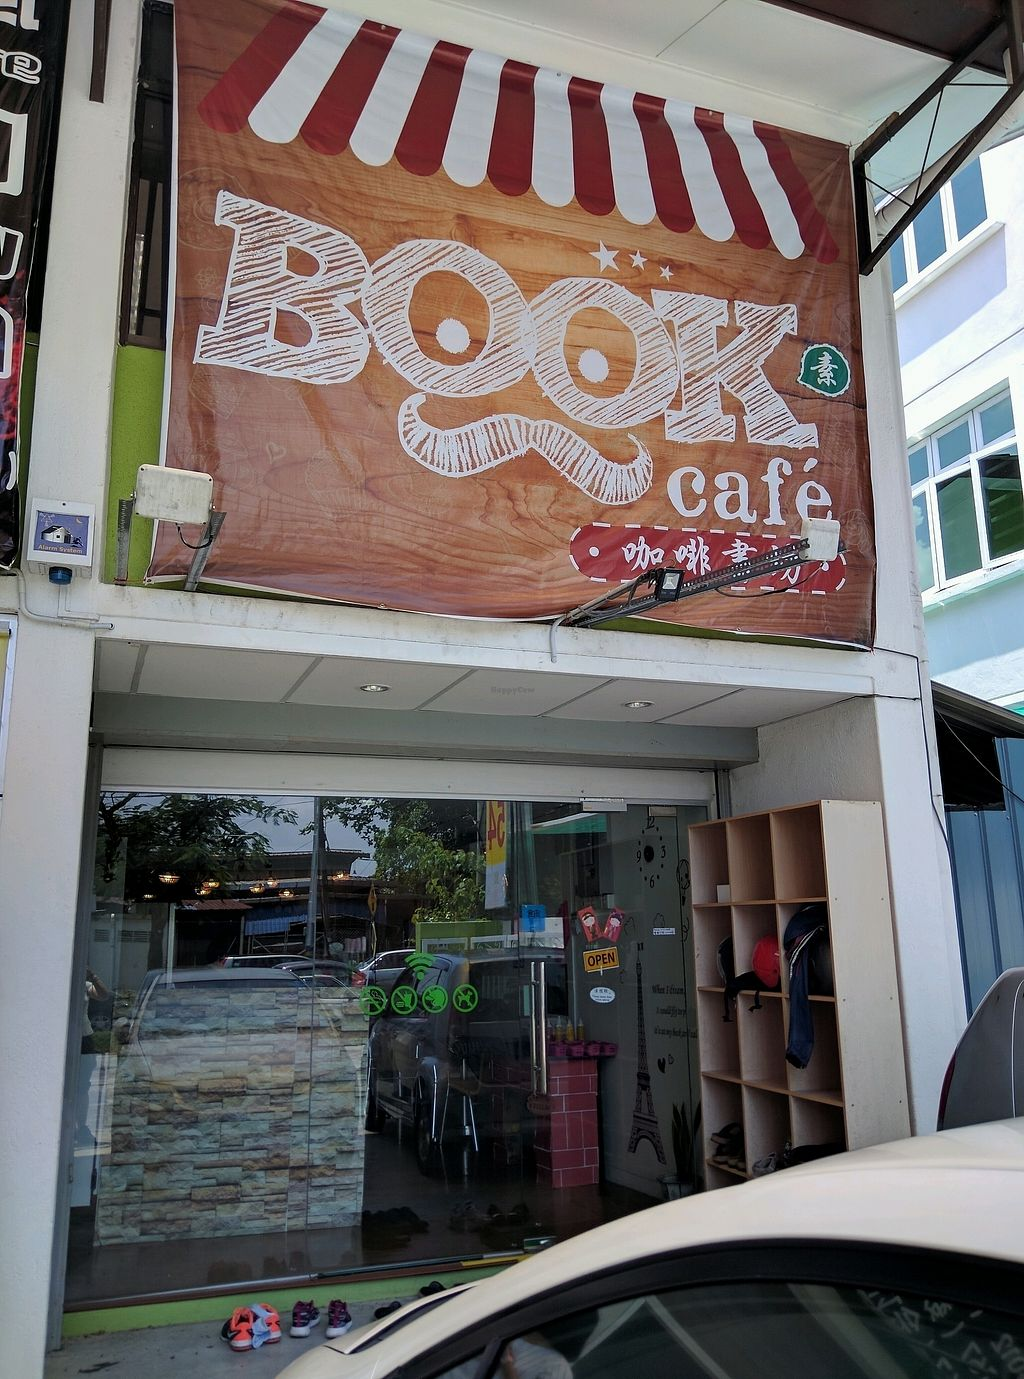 """Photo of Book Cafe  by <a href=""""/members/profile/Summer_Tan"""">Summer_Tan</a> <br/>9 Degrees Book Cafe's (Vegetarian Cafe) storefront <br/> January 27, 2018  - <a href='/contact/abuse/image/64126/351517'>Report</a>"""